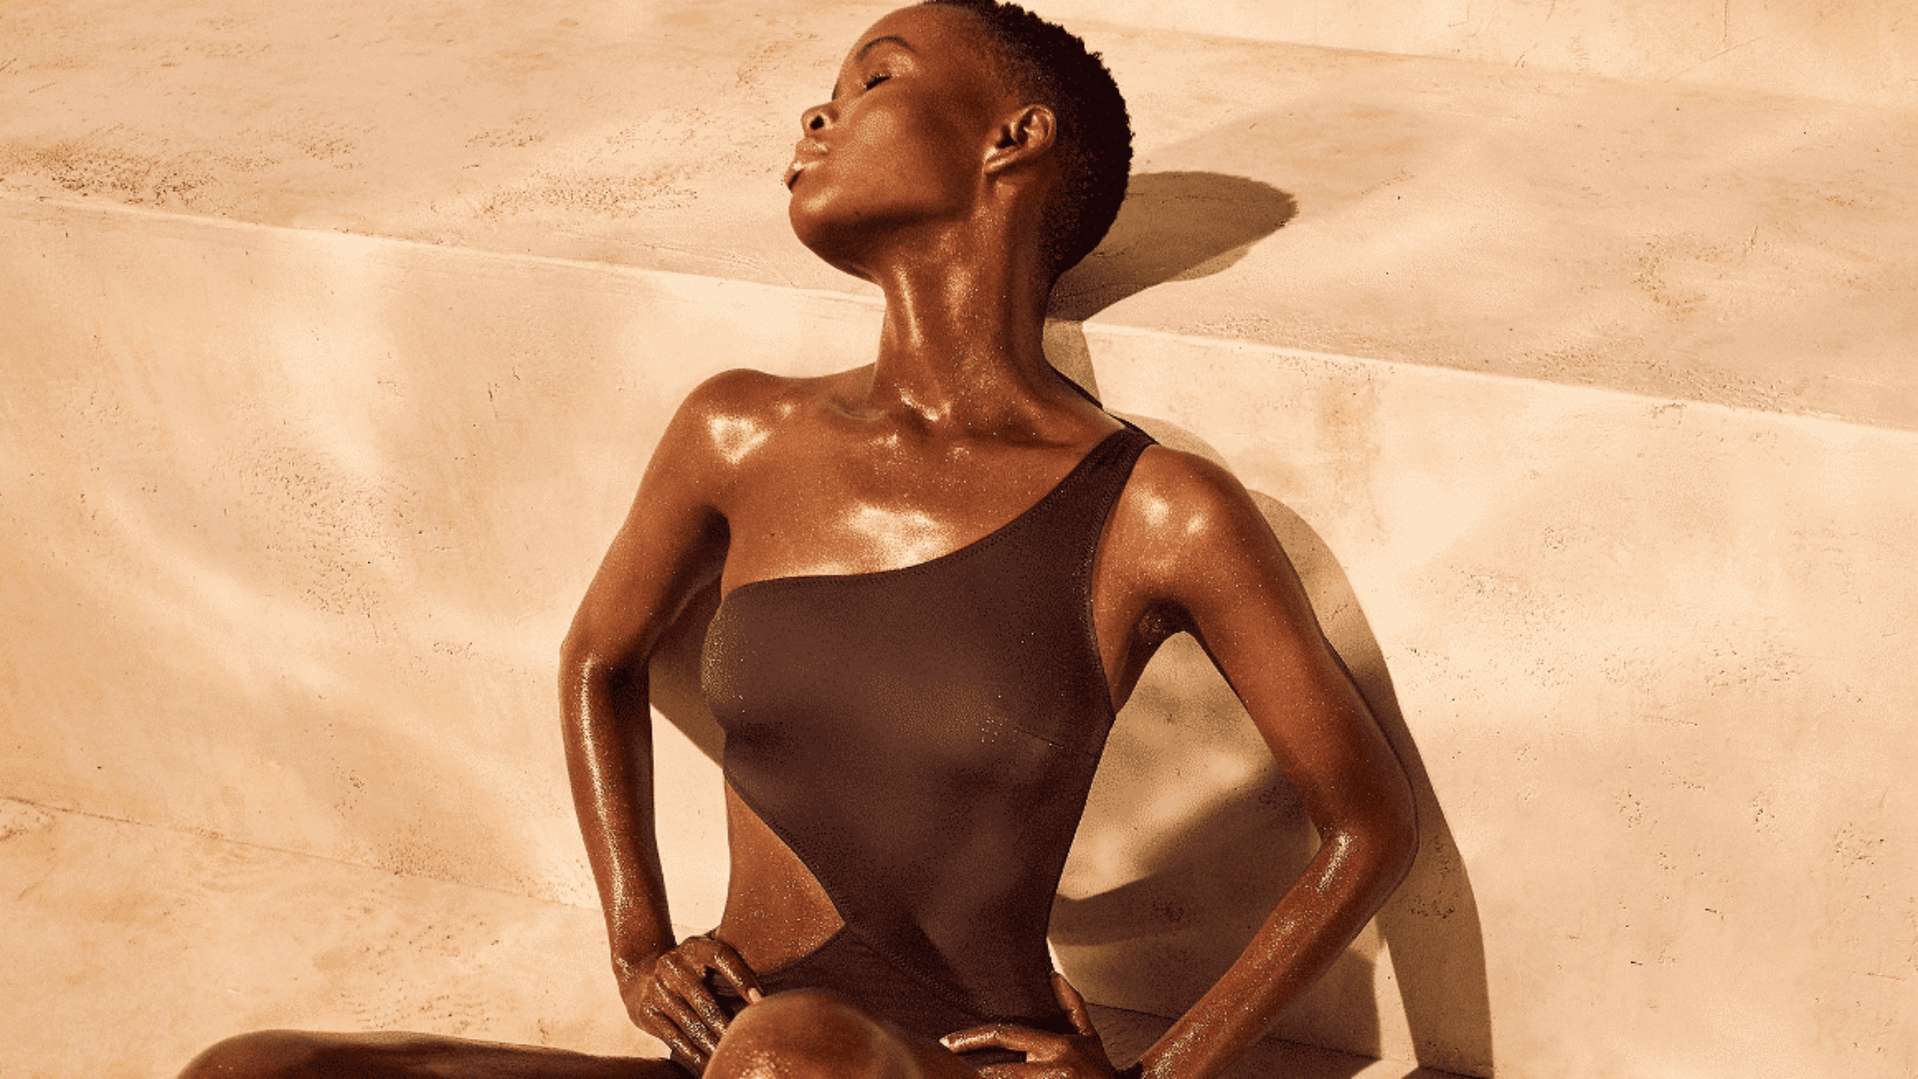 Get Your Glow On This Spring With These Illuminating Body Highlighters